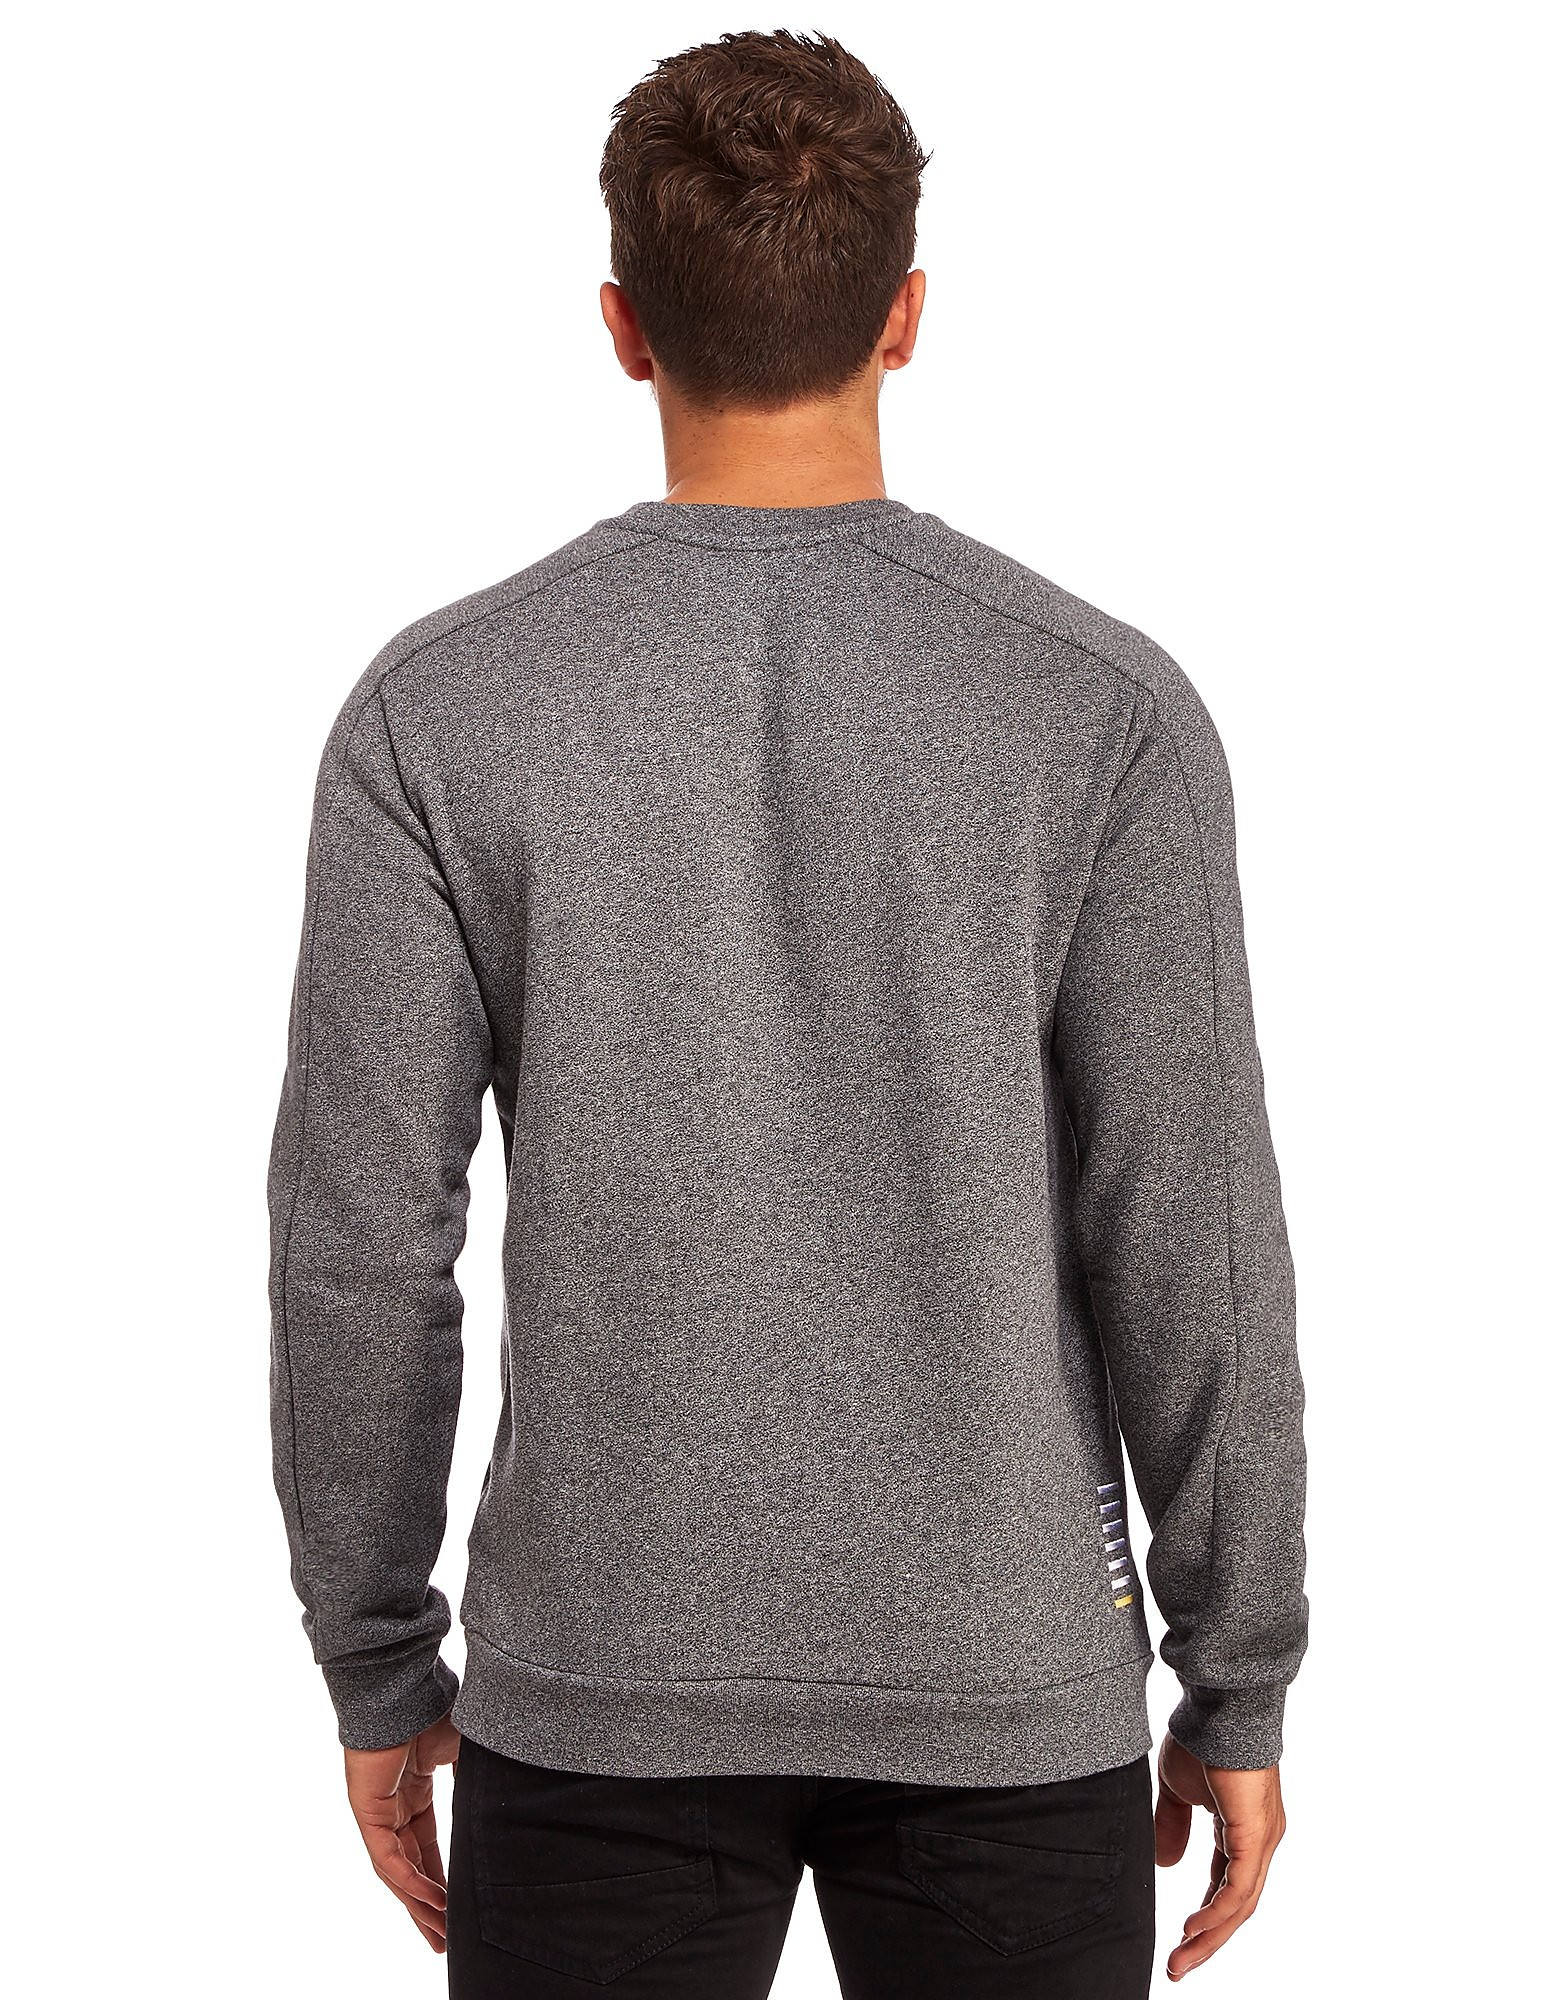 Emporio Armani EA7 Enhanced Crew Sweatshirt